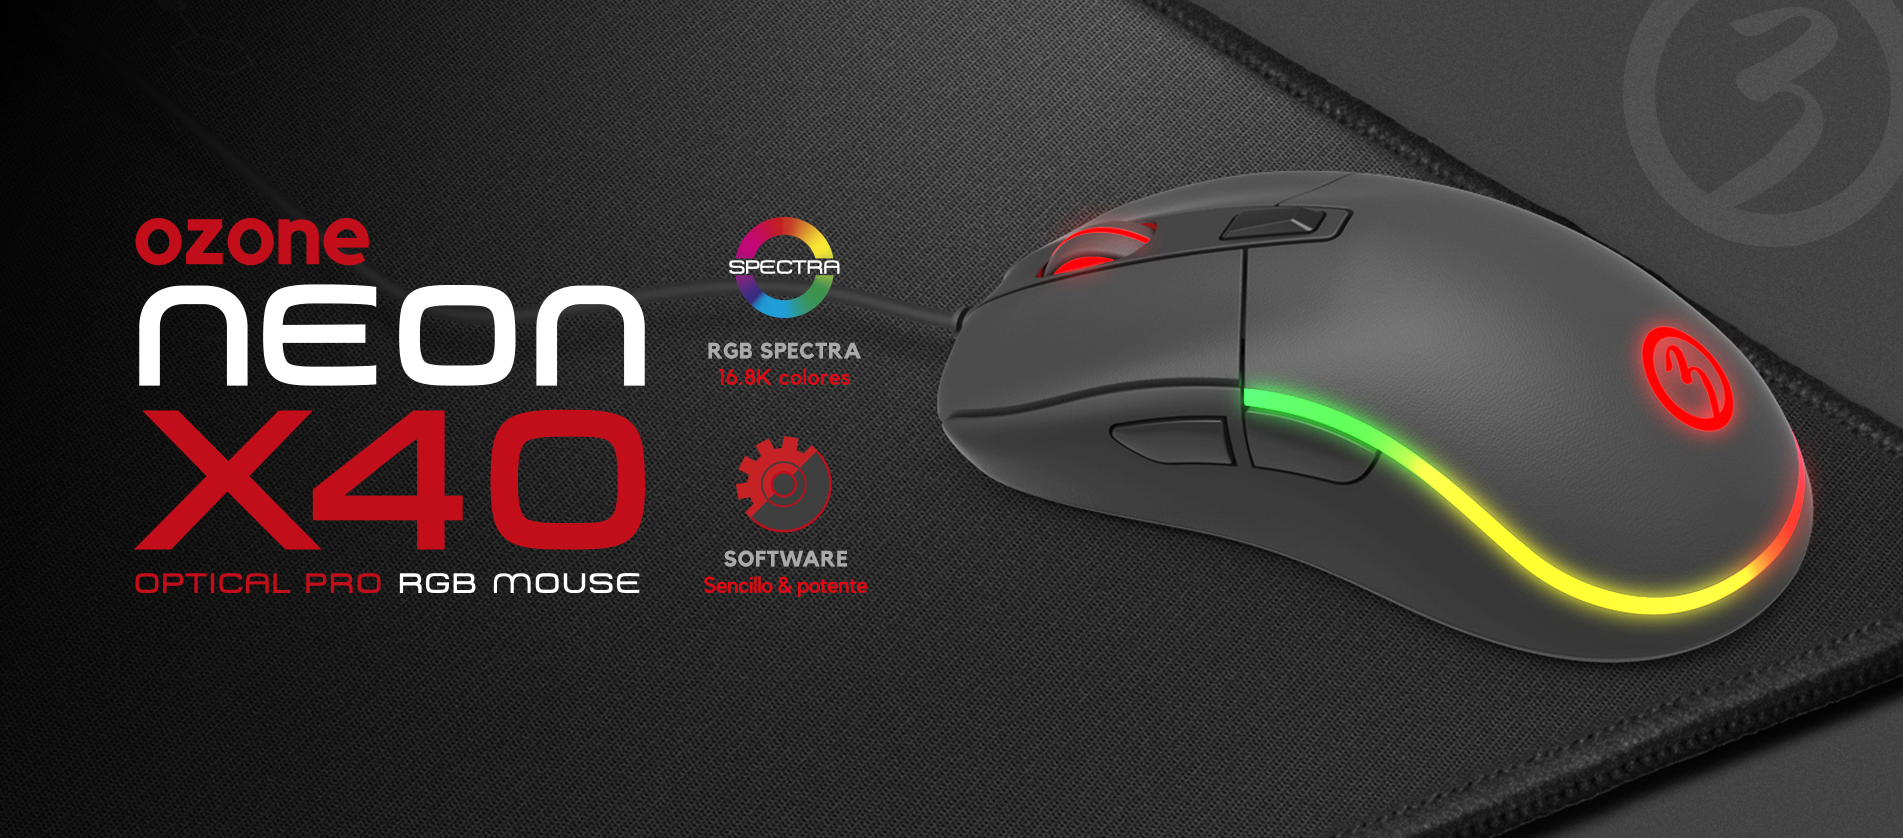 [REVIEW] Ratón Ozone Neon x40